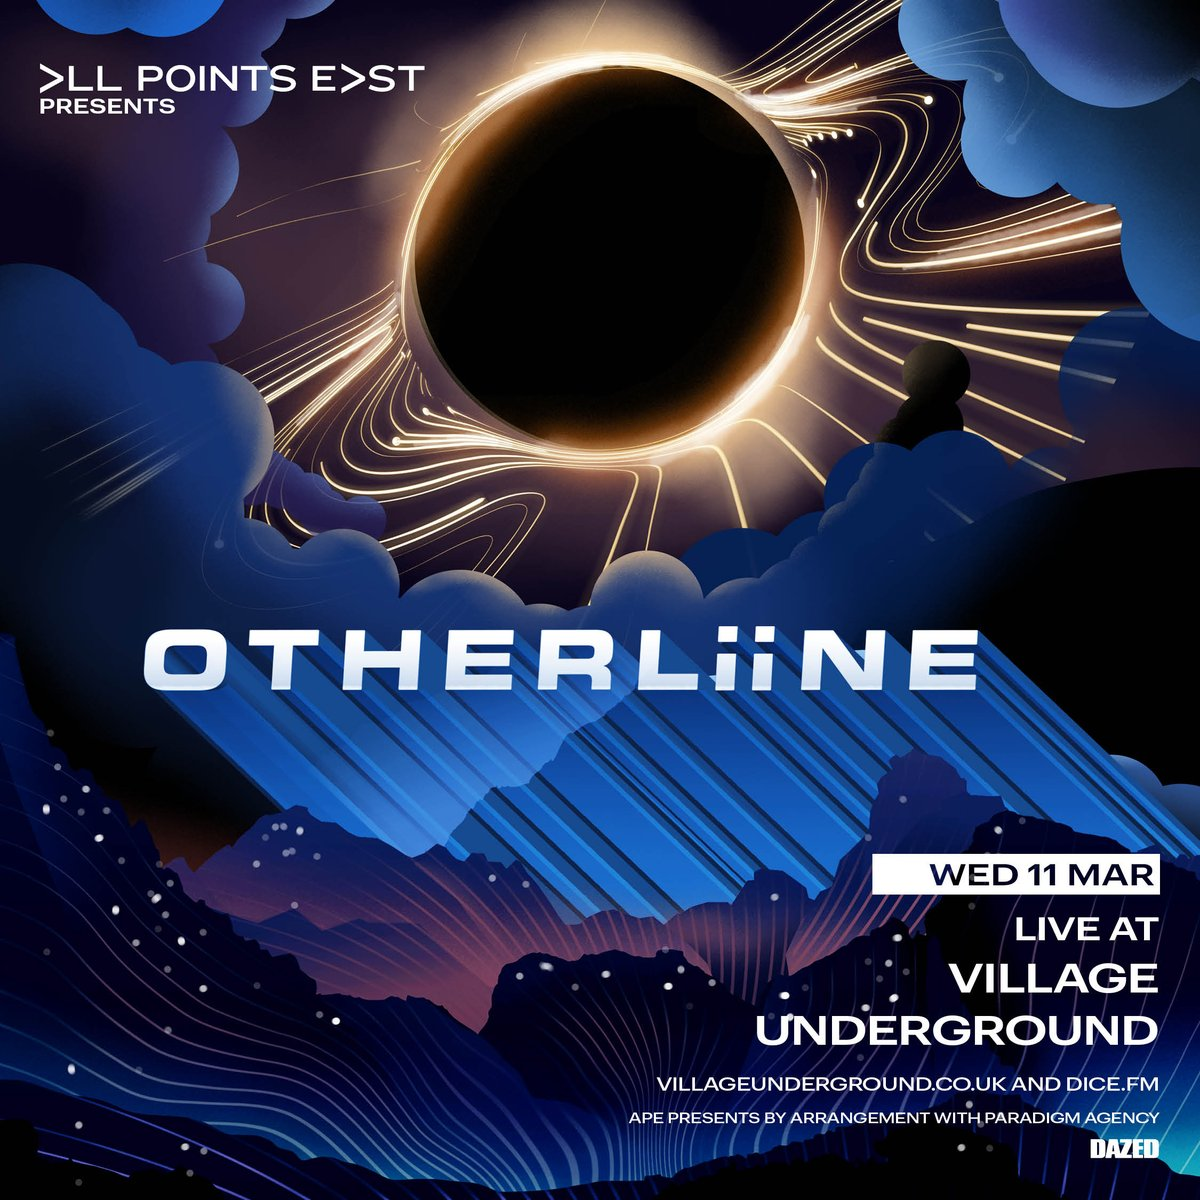 OTHERLiiNE LIVE at @villageunderground on 11th March // Only headline show we're playing, so we want to make it special // Venue will run at a smaller cap to accommodate audiovisual experience tailored to the record. Tickets limited. On sale Friday 7th Feb @ 10am - Don't sleep!